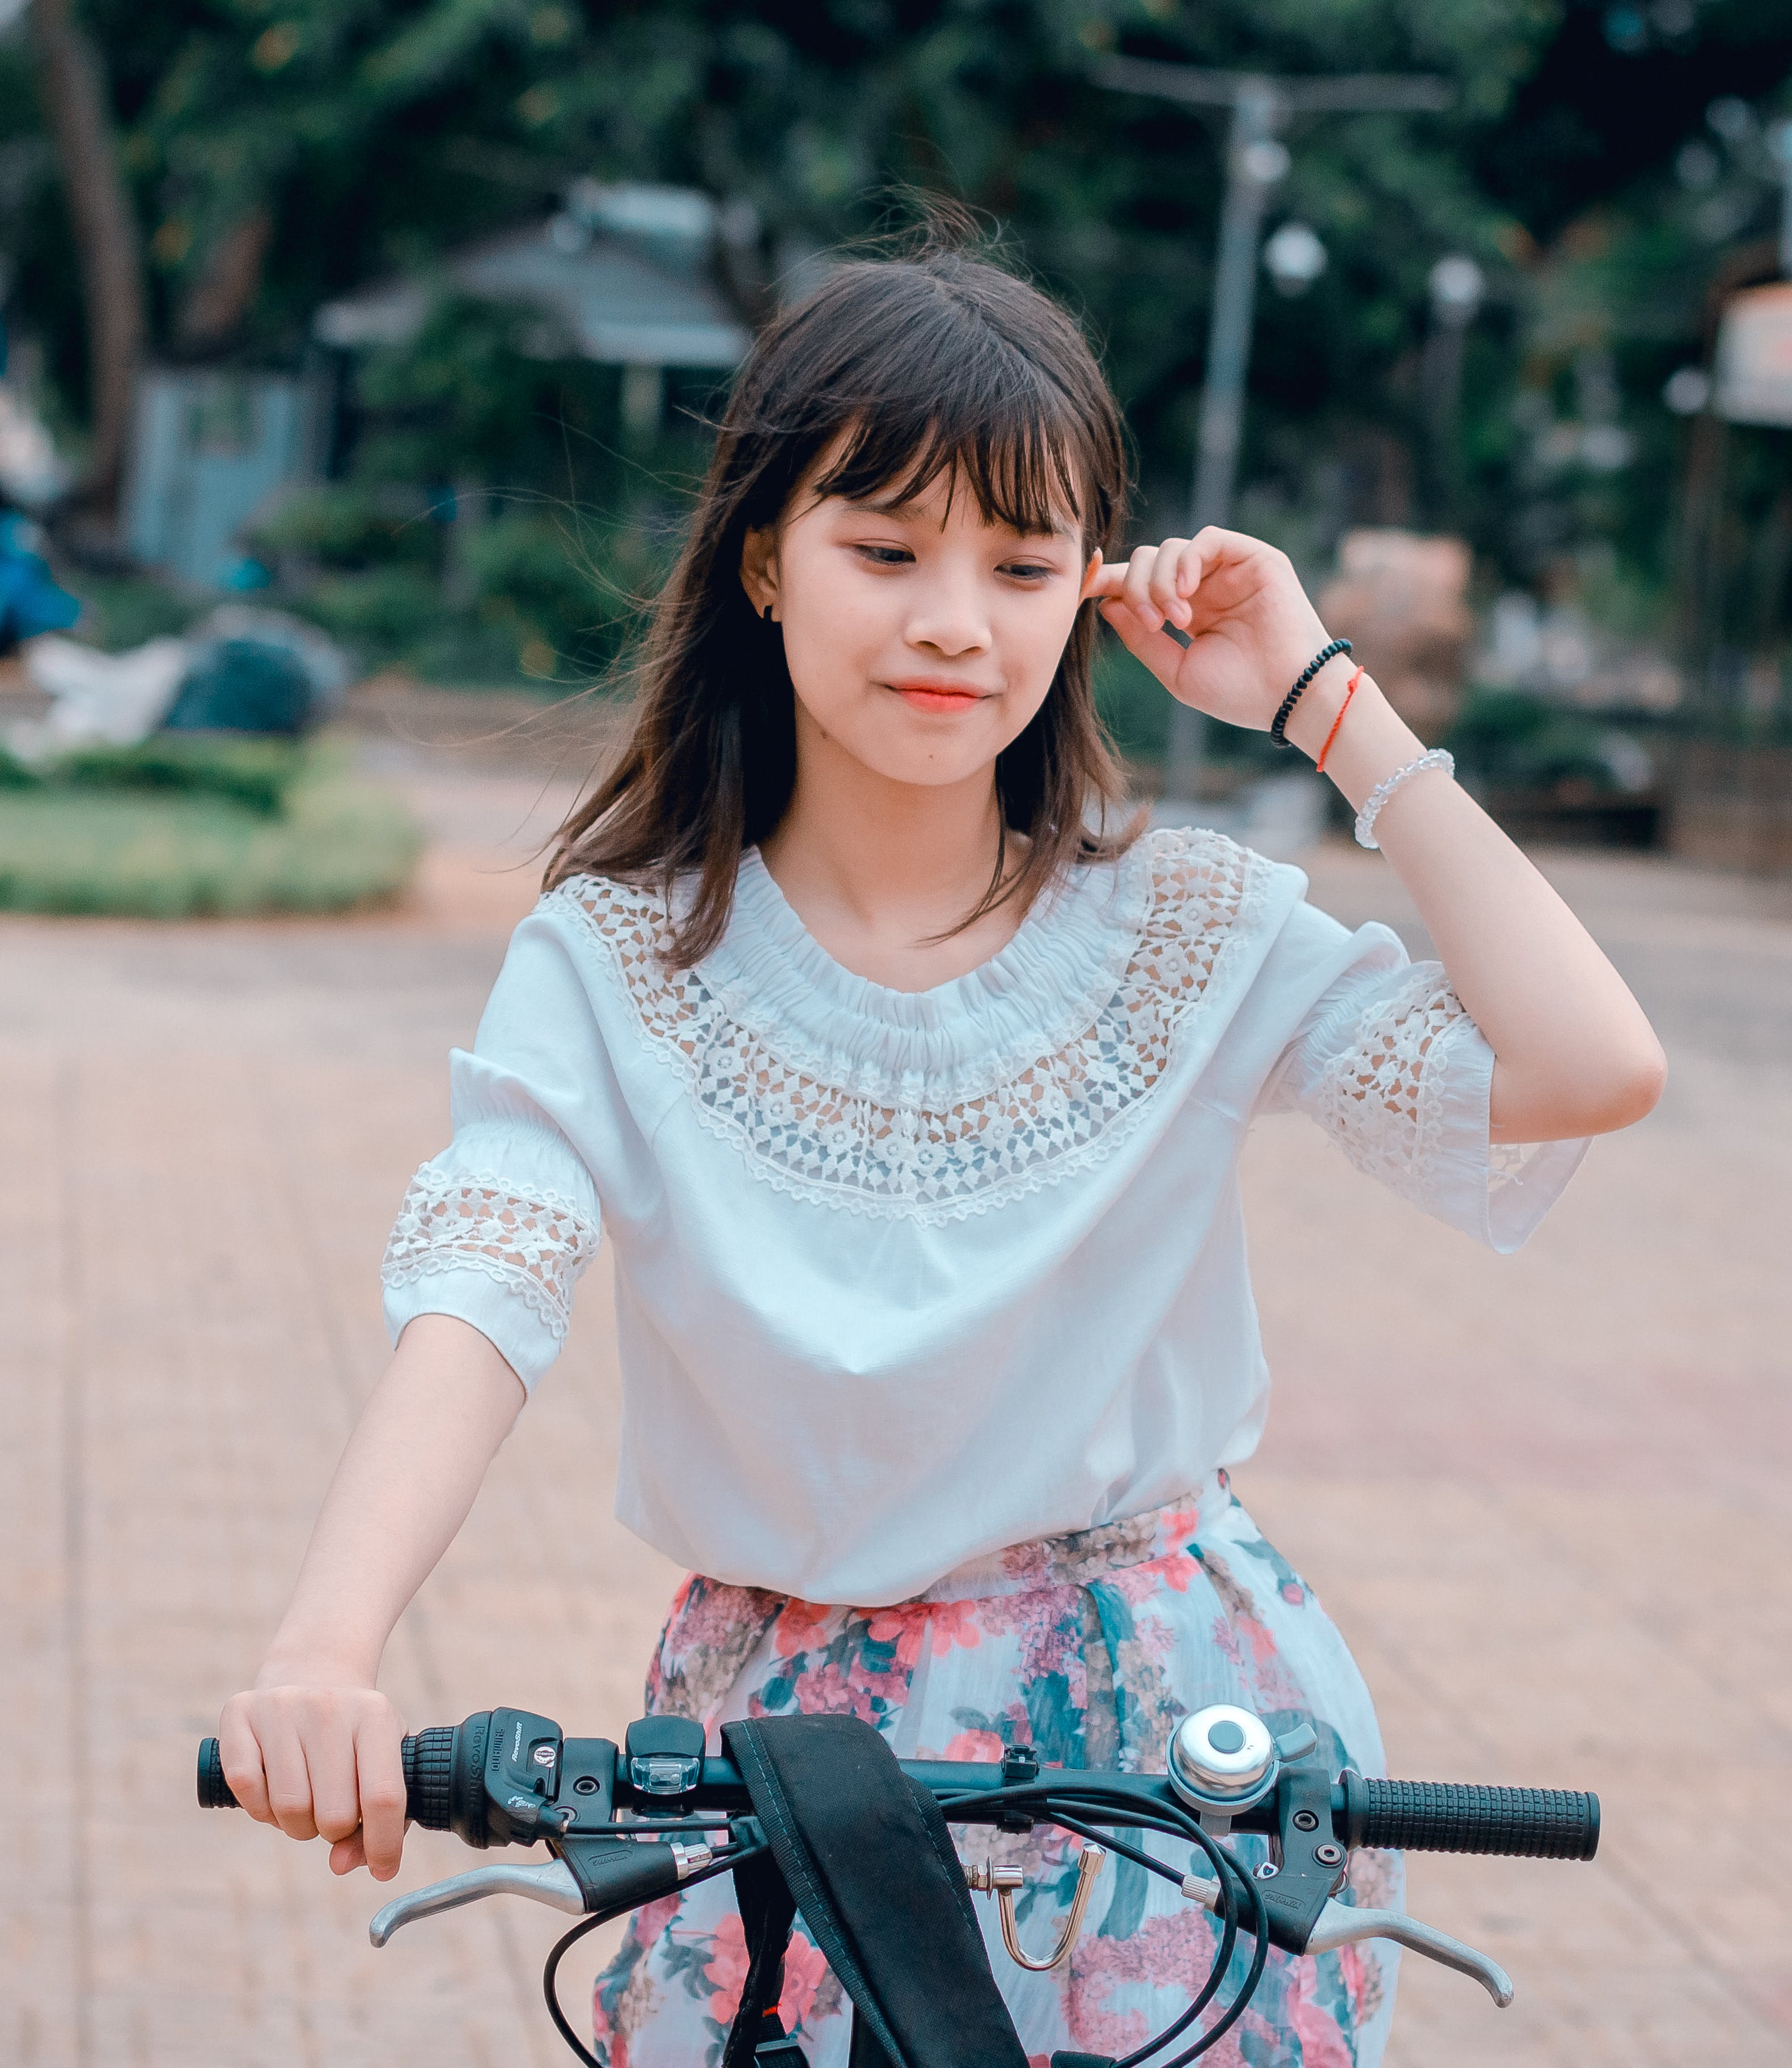 Woman Wearing White Blouse and Multicolored Floral Skirt Riding Bike